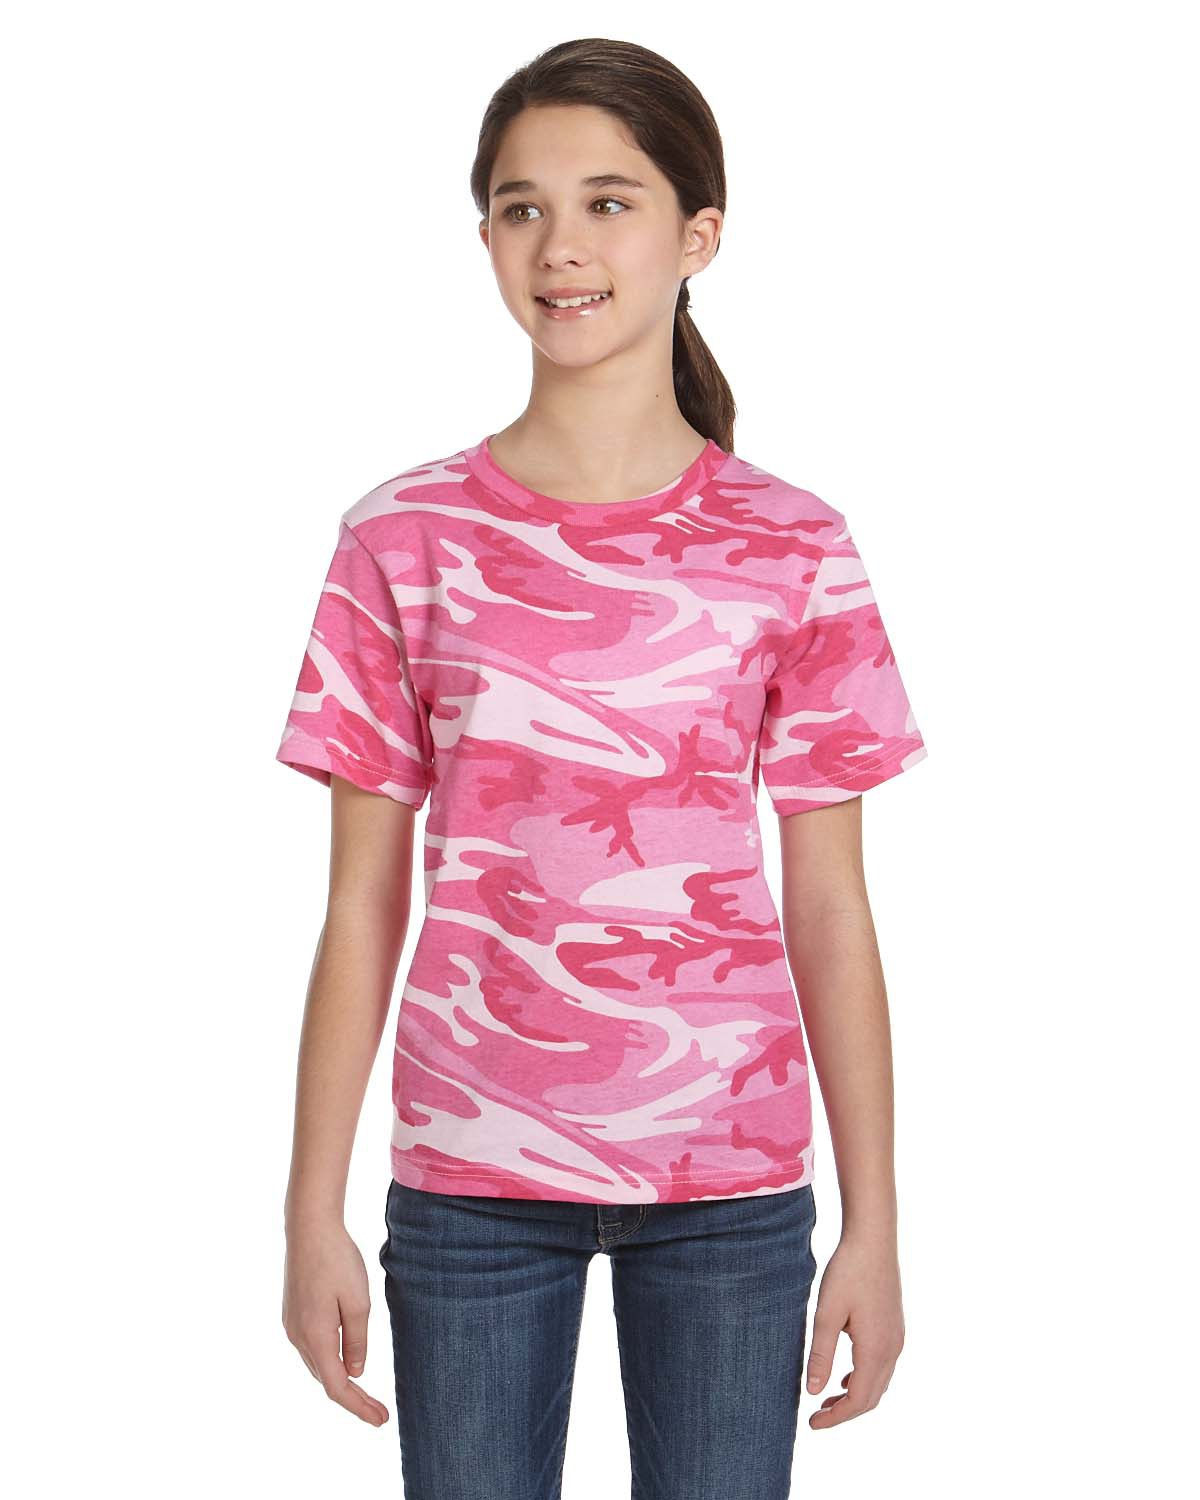 Code Five 2206 – Youth Camouflage T-Shirt 1